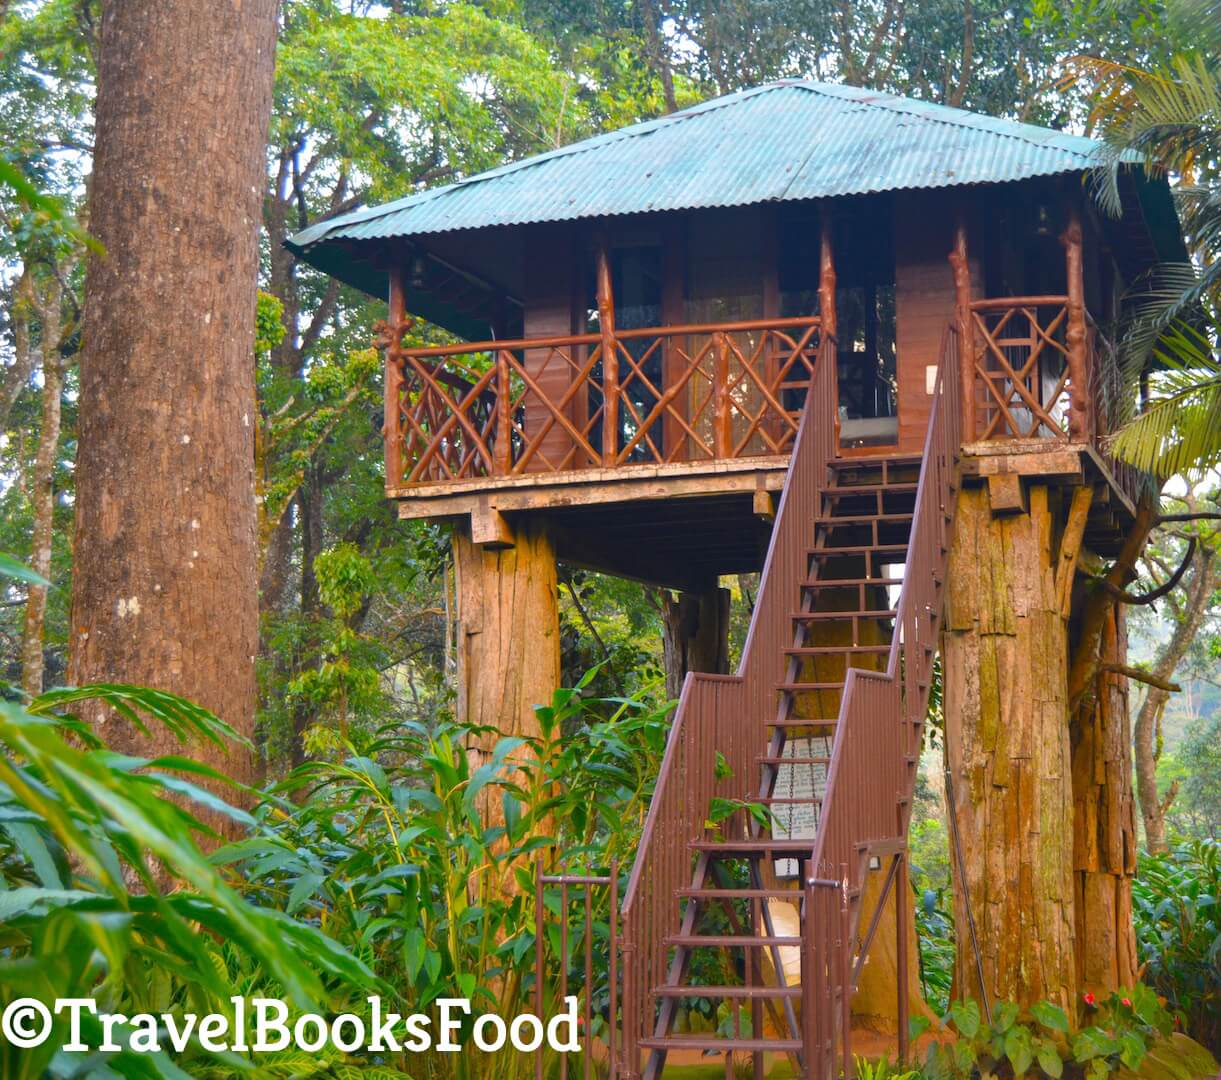 Picture of a tree house in Kerala, India